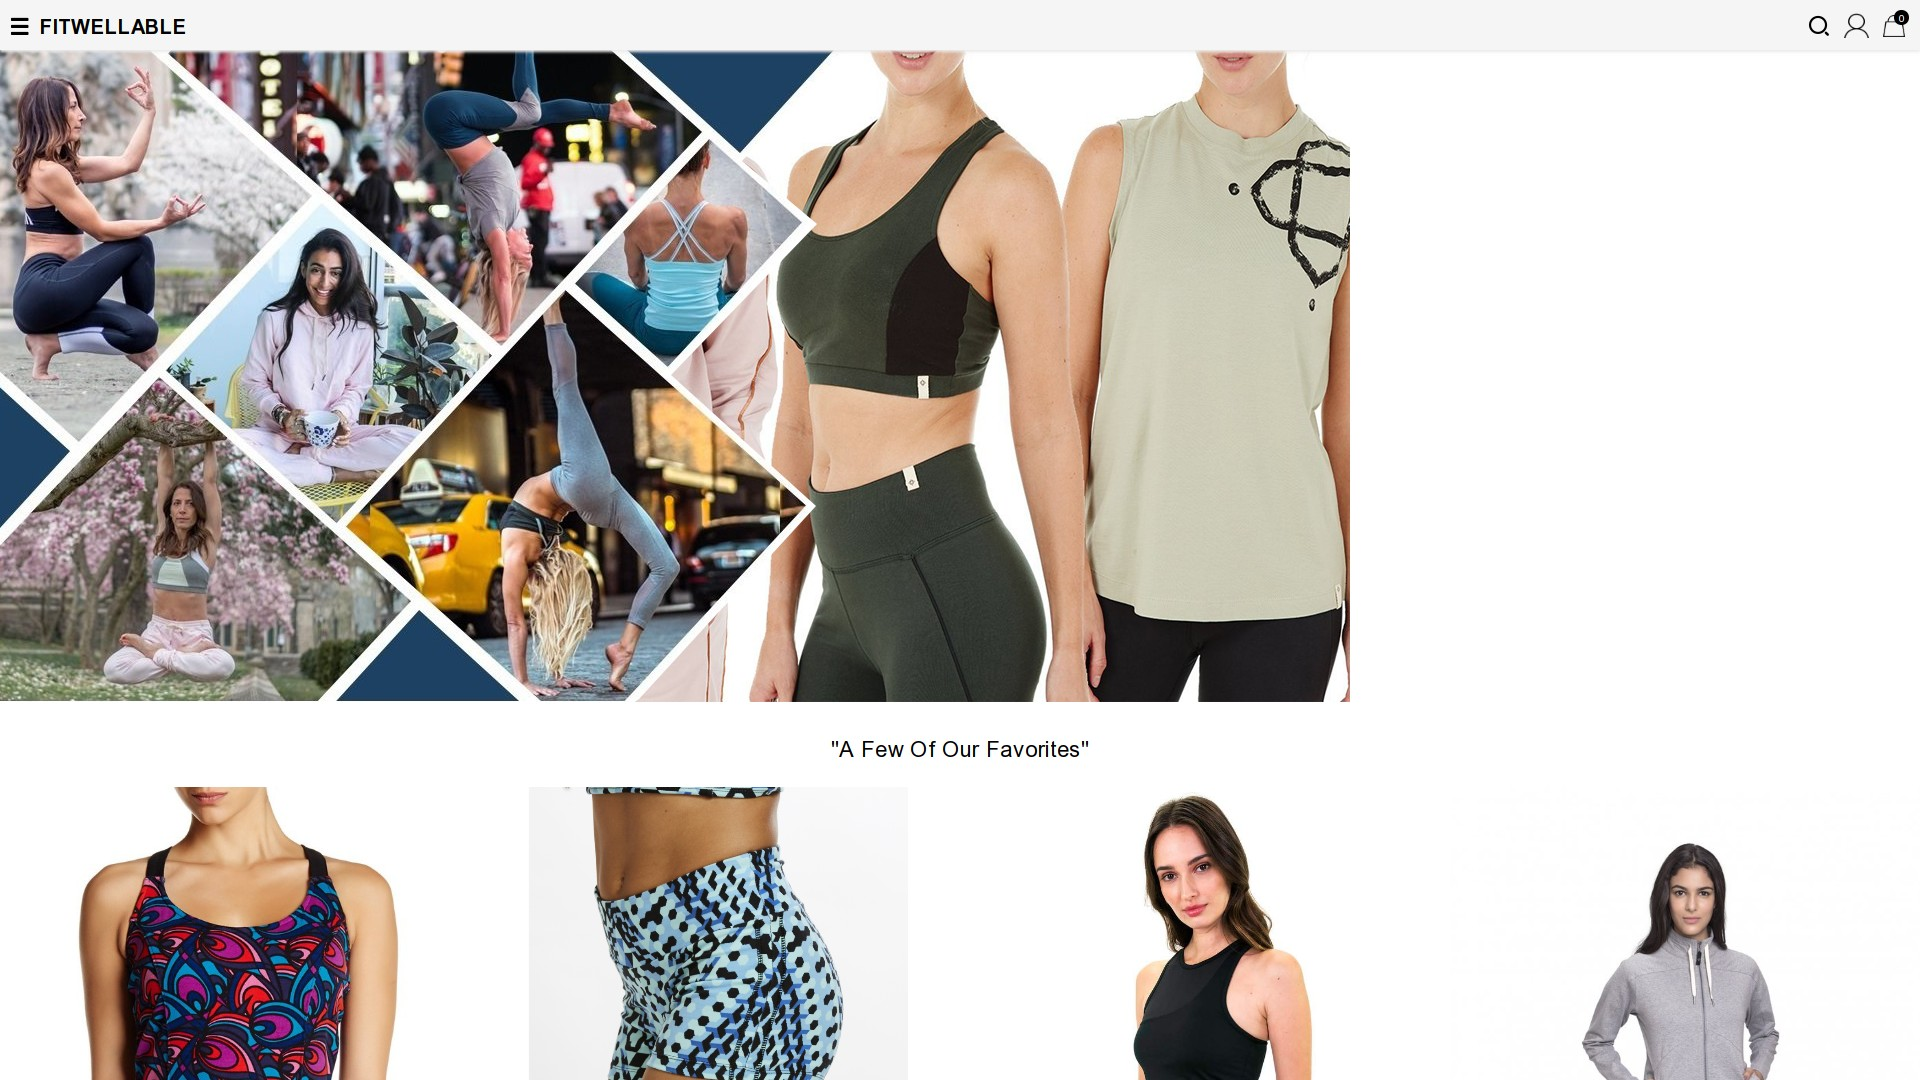 Fitwellable Review  Is the Online Clothing Store a Scam?